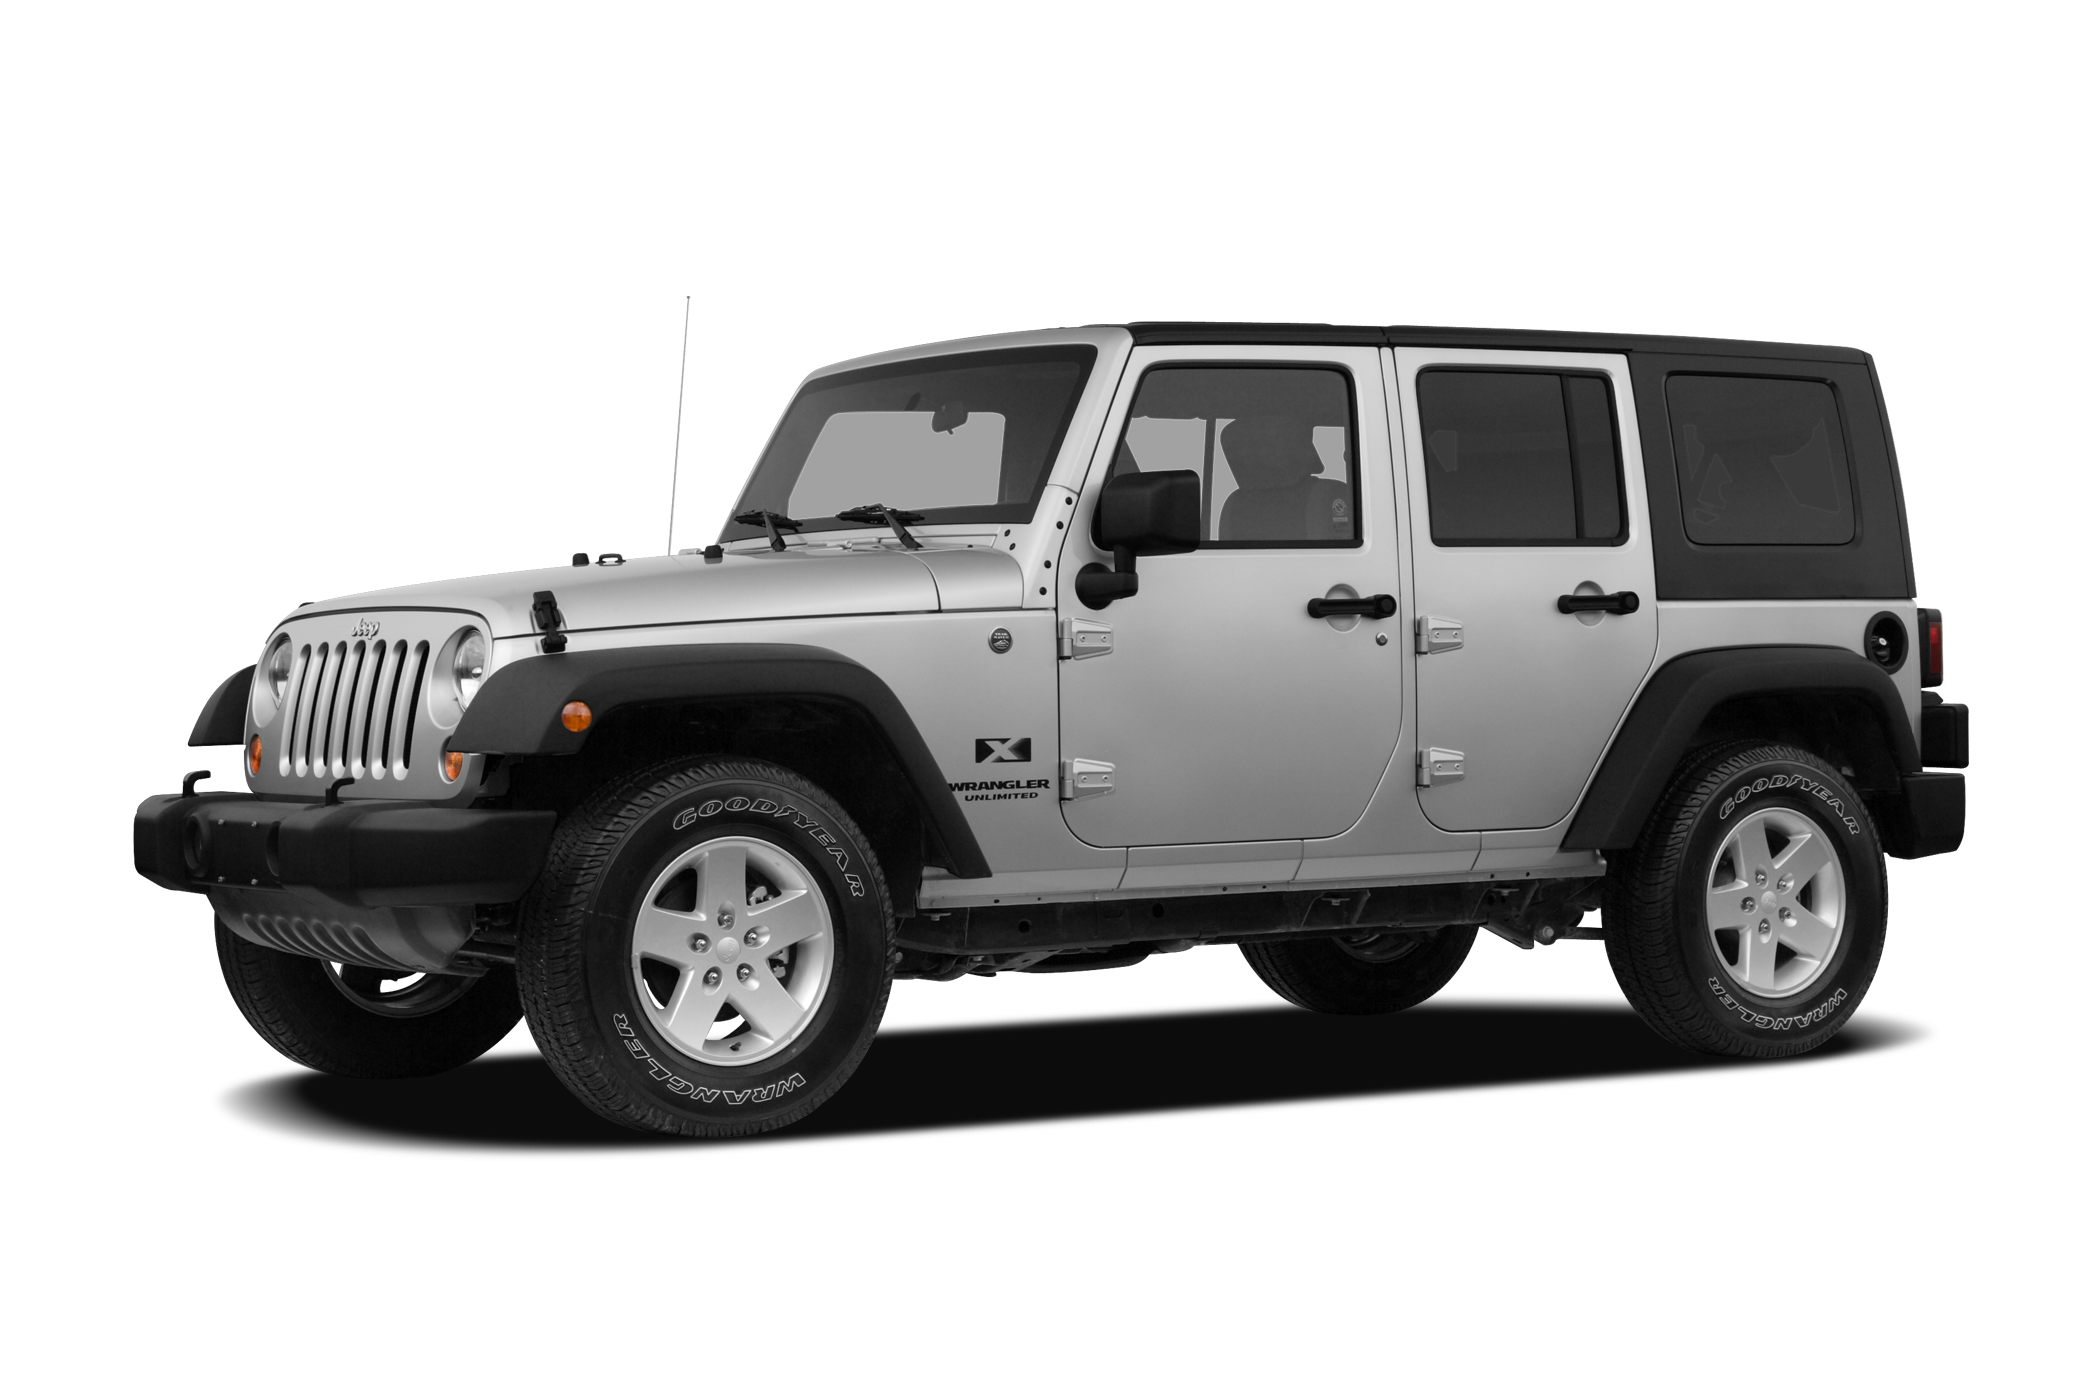 2007 Jeep Wrangler Unlimited Rubicon SUV for sale in Ardmore for $23,000 with 63,876 miles.